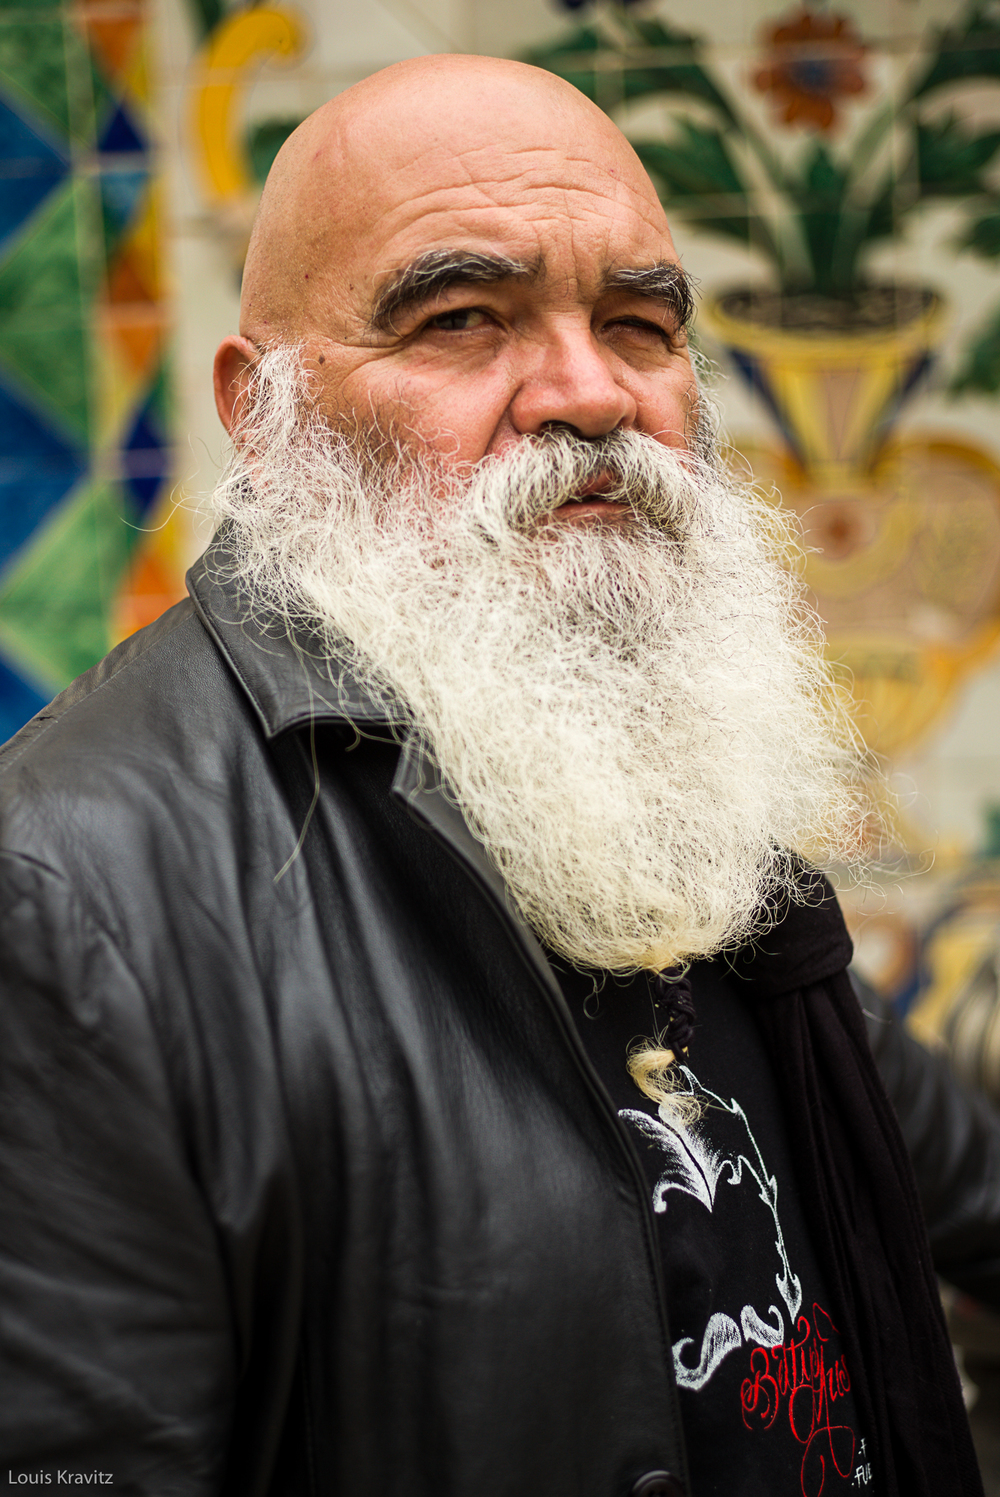 portrait of a senior man with long beard